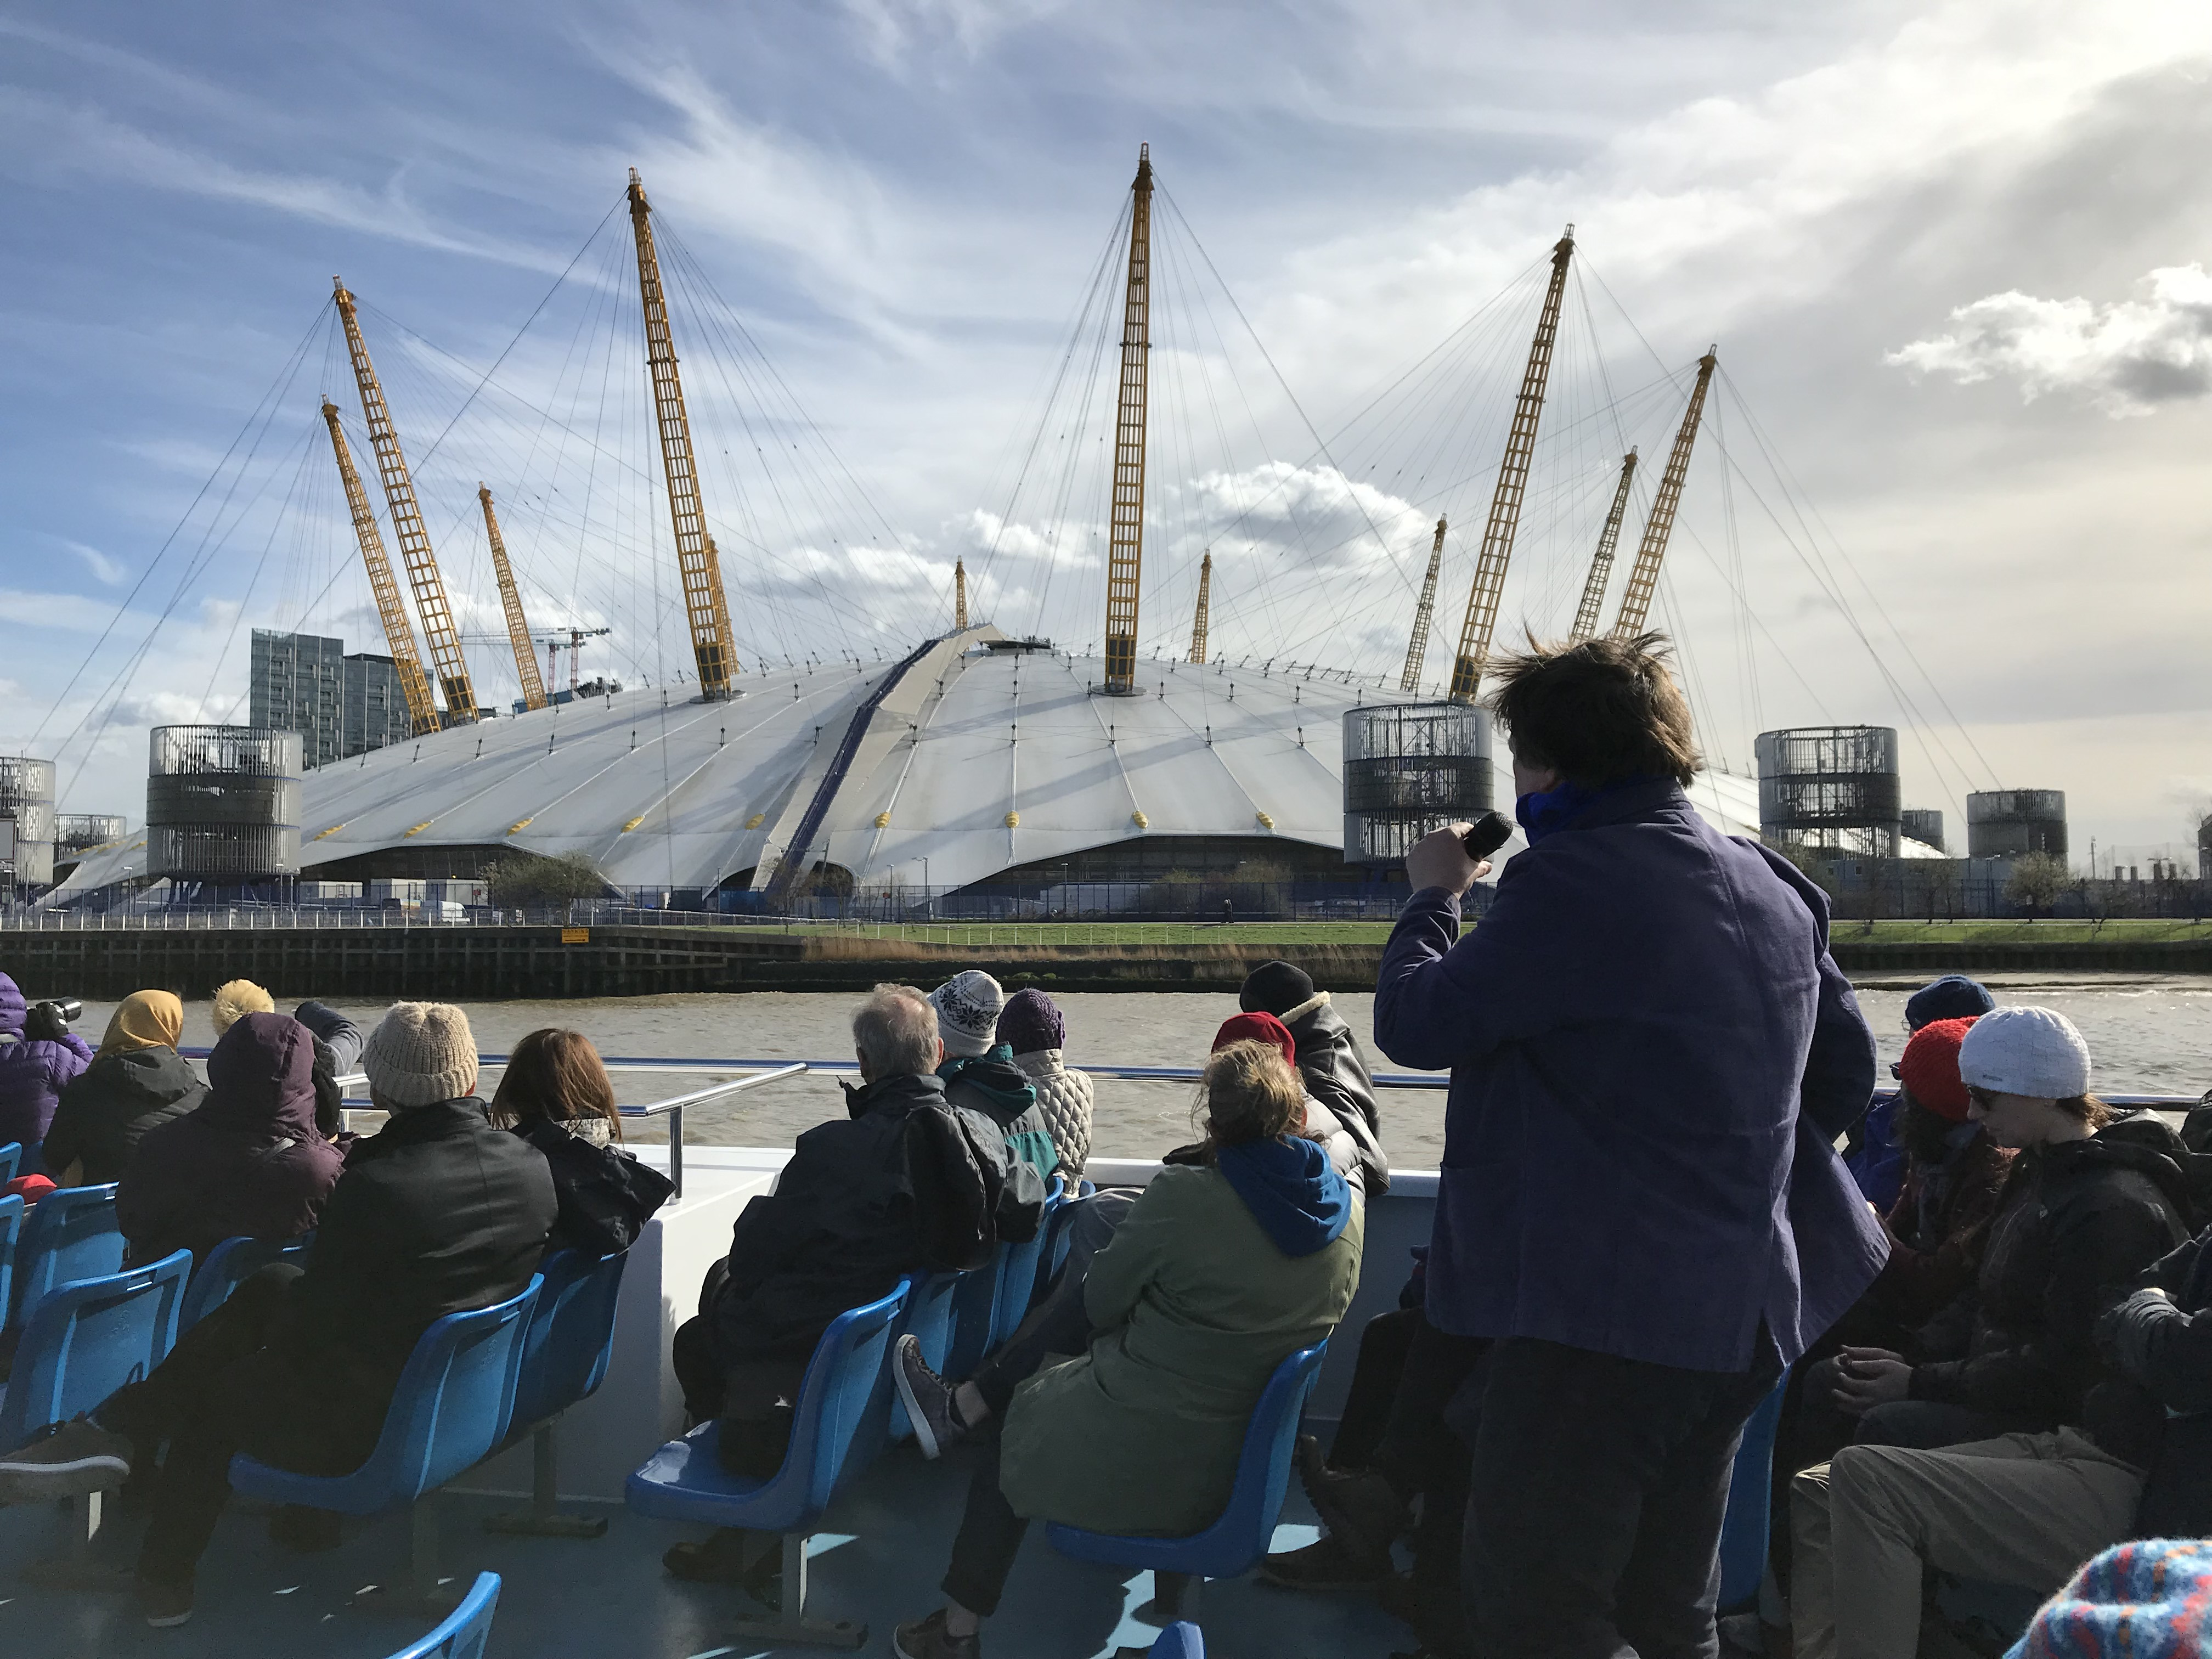 A crowd of people on the Thames East tour taking photos of The O2